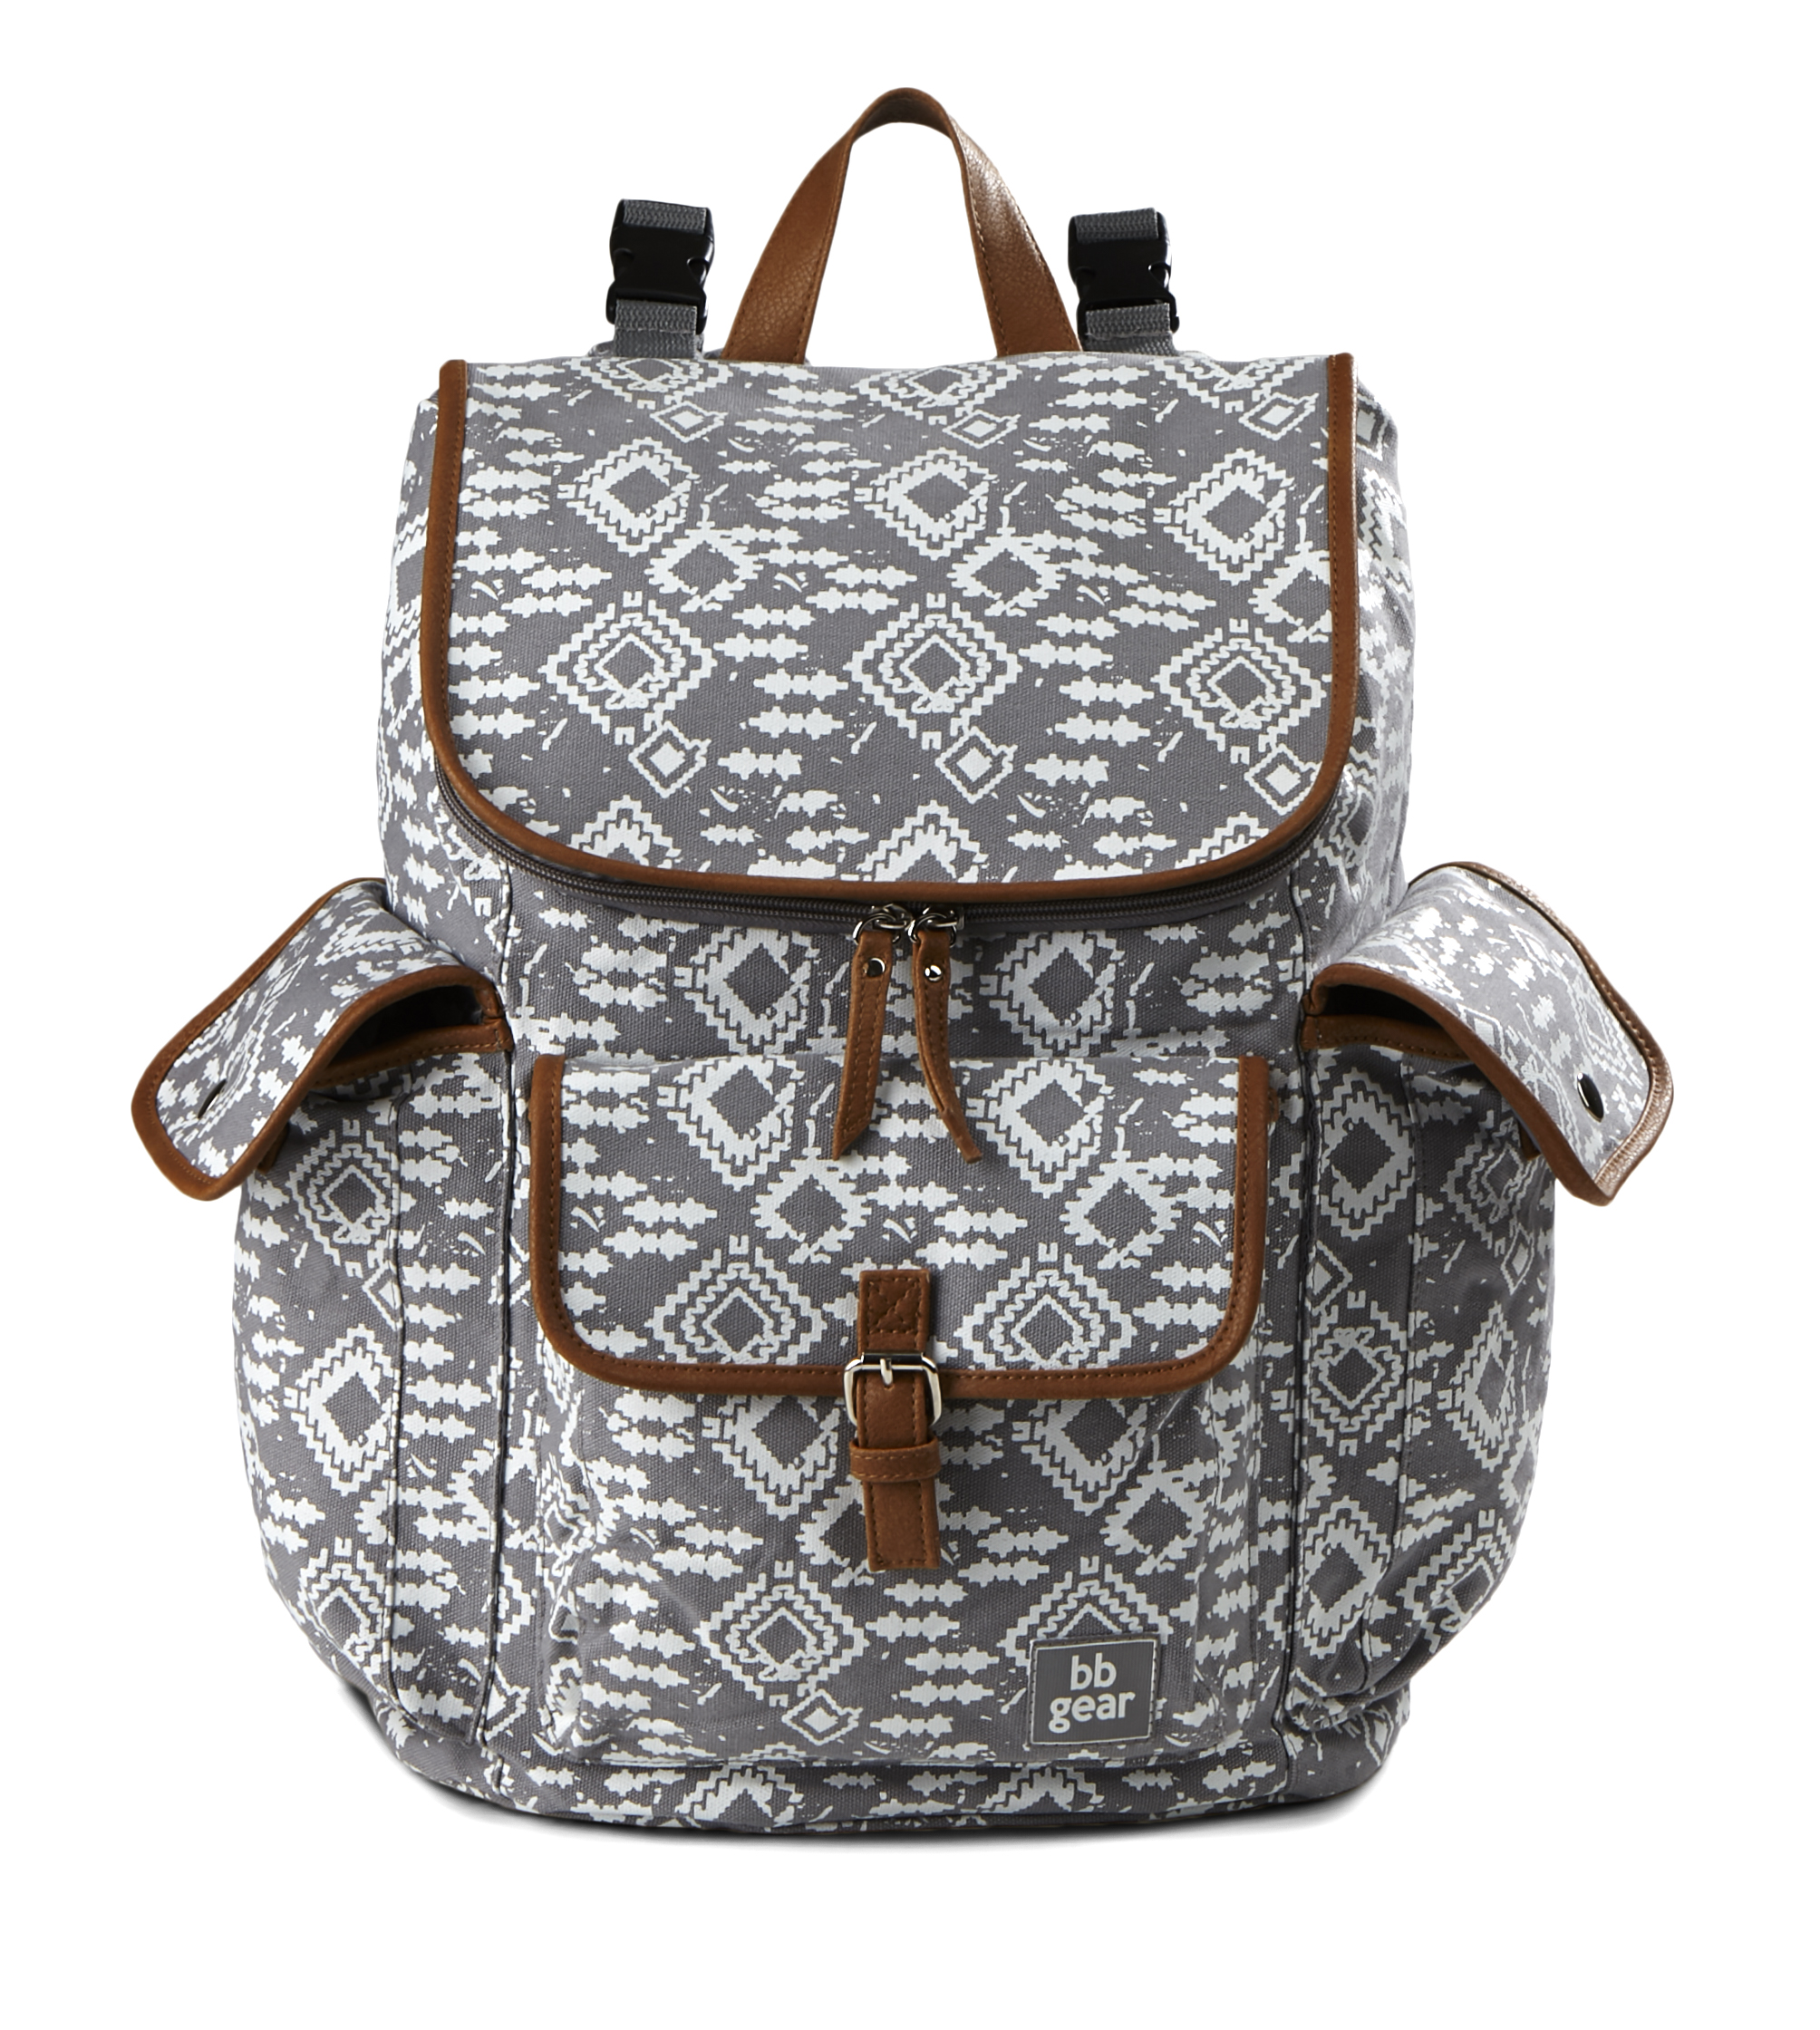 Baby Boom BB Gear Aztec Print Backpack Diaper Bag - Grey/White